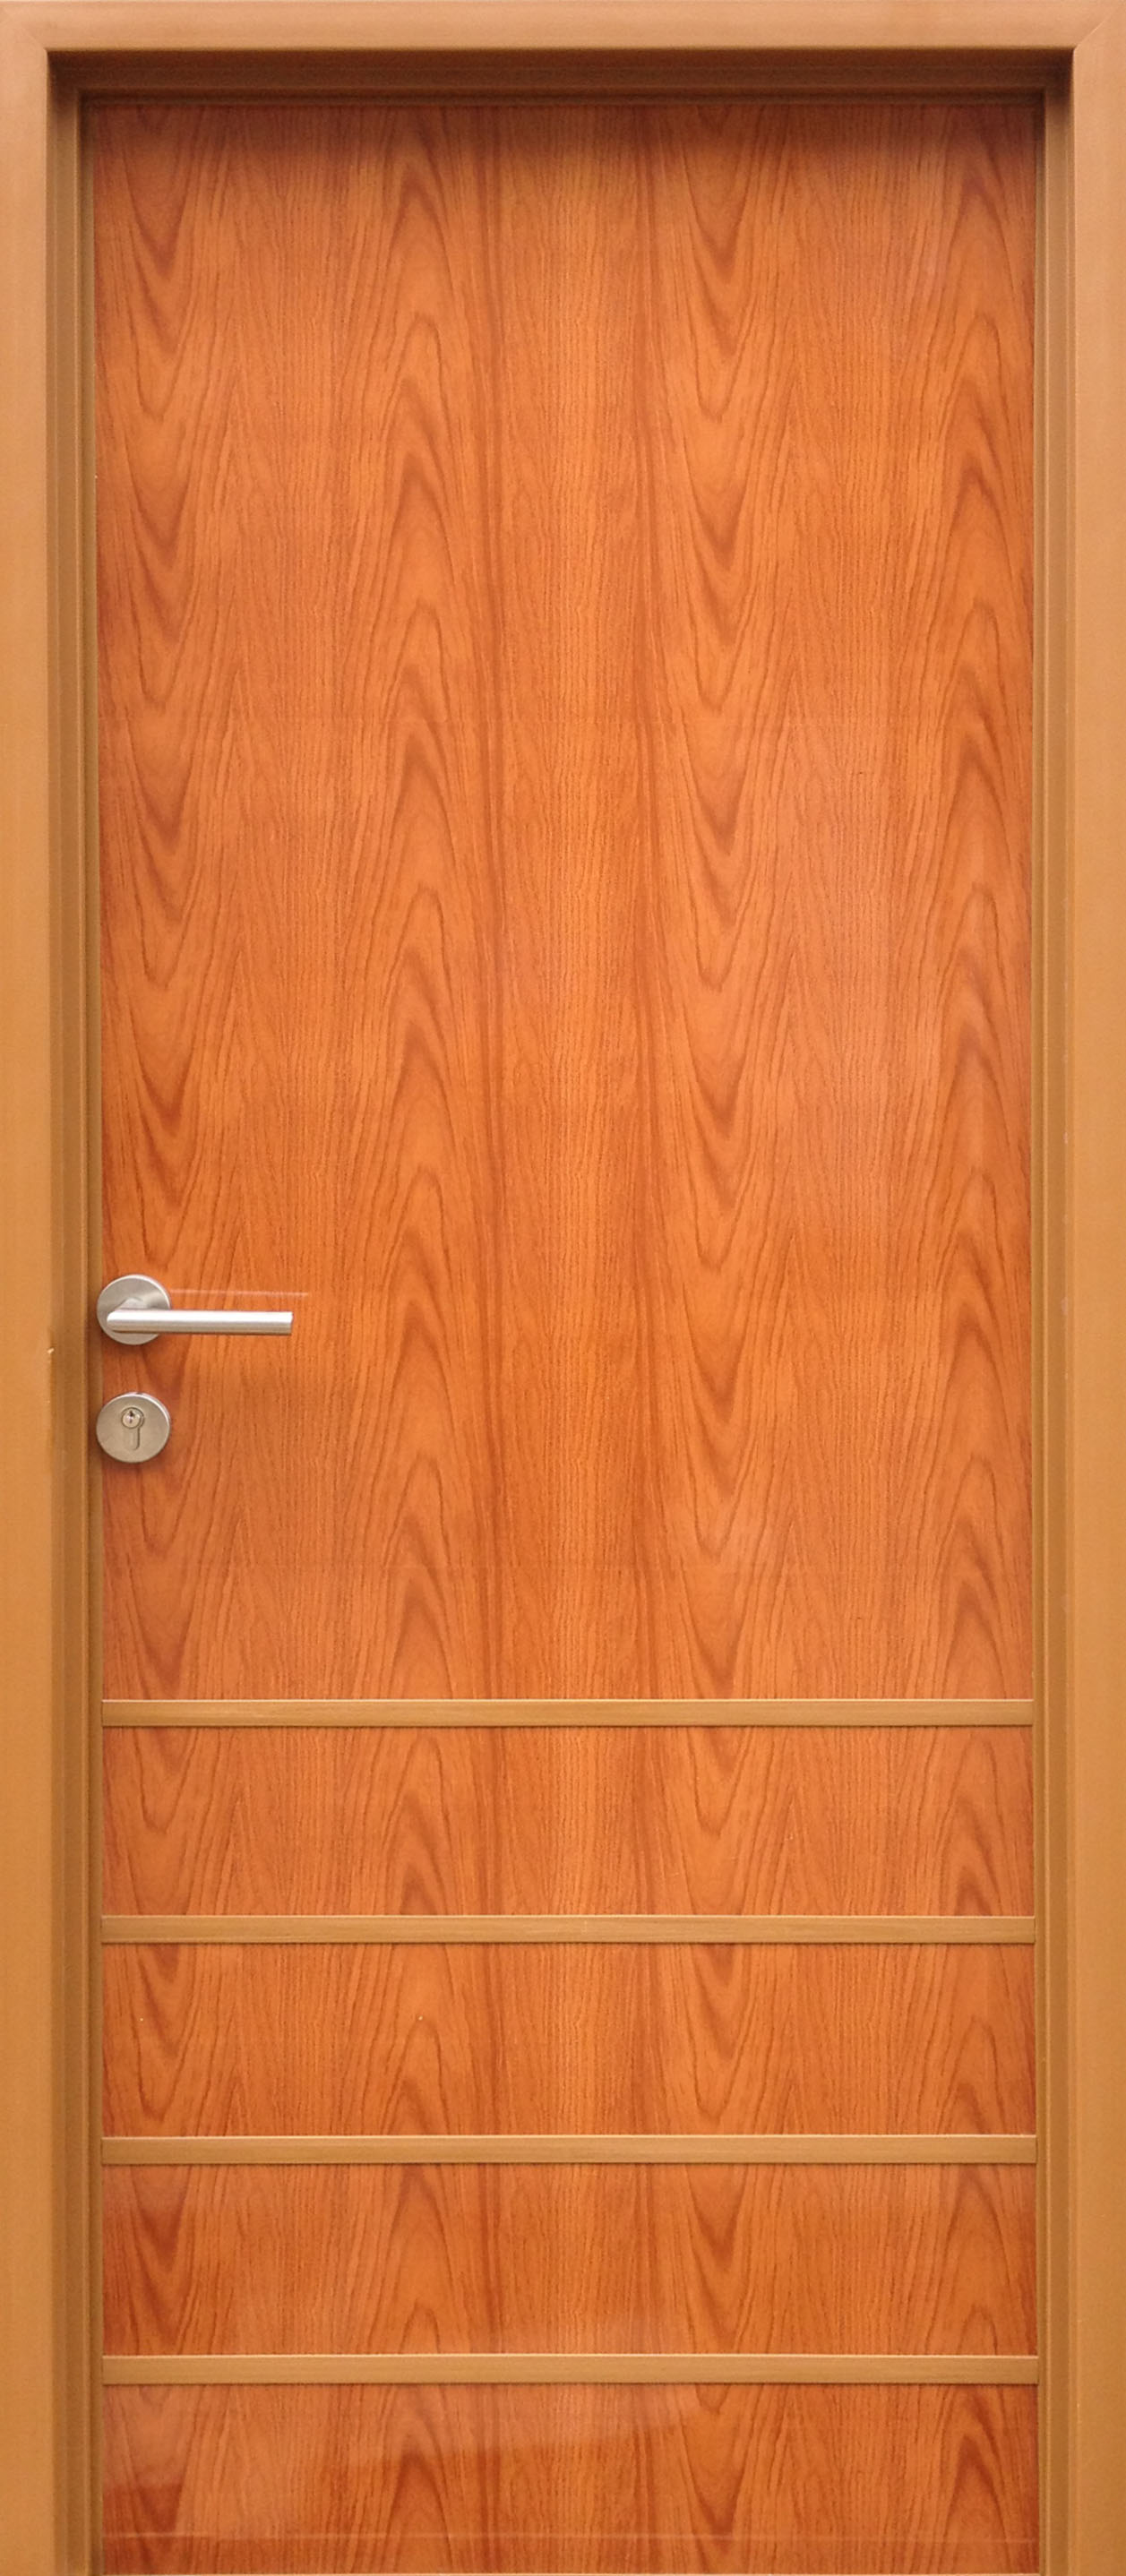 Design Line Entrance & Internal Doors - Clean lines for a variety of ...